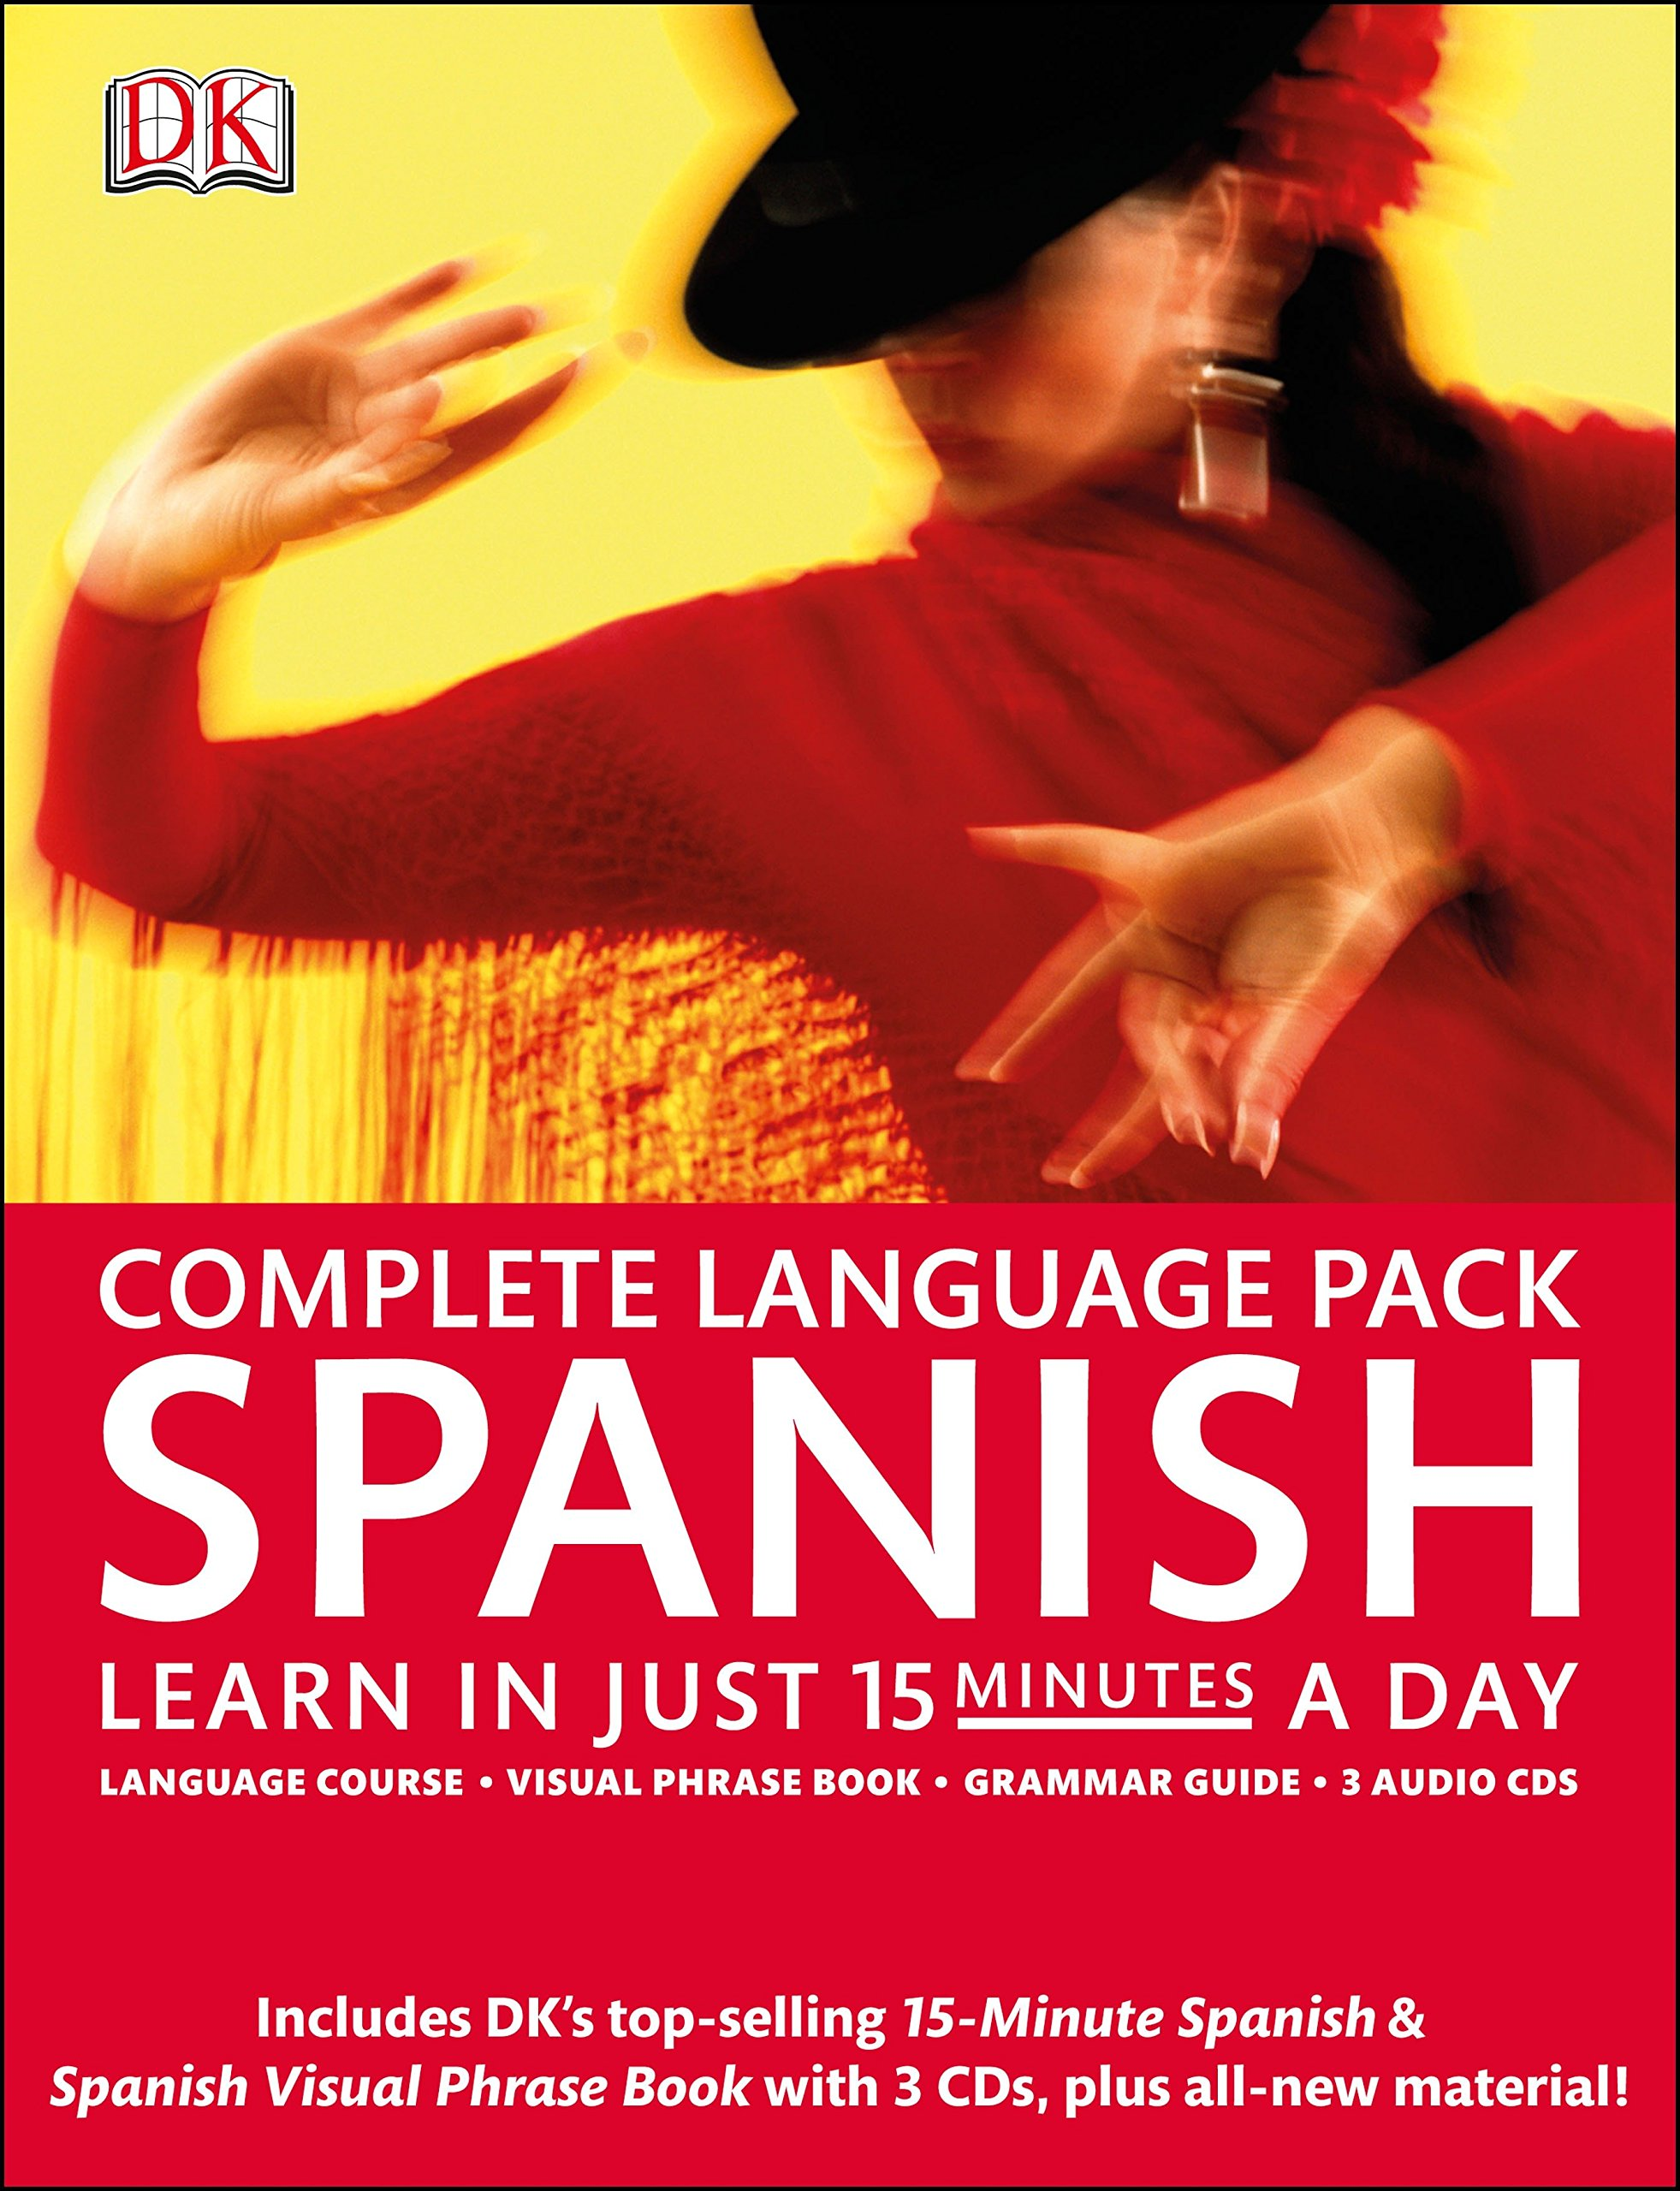 Complete Spanish Pack (Complete Language Pack) by DK